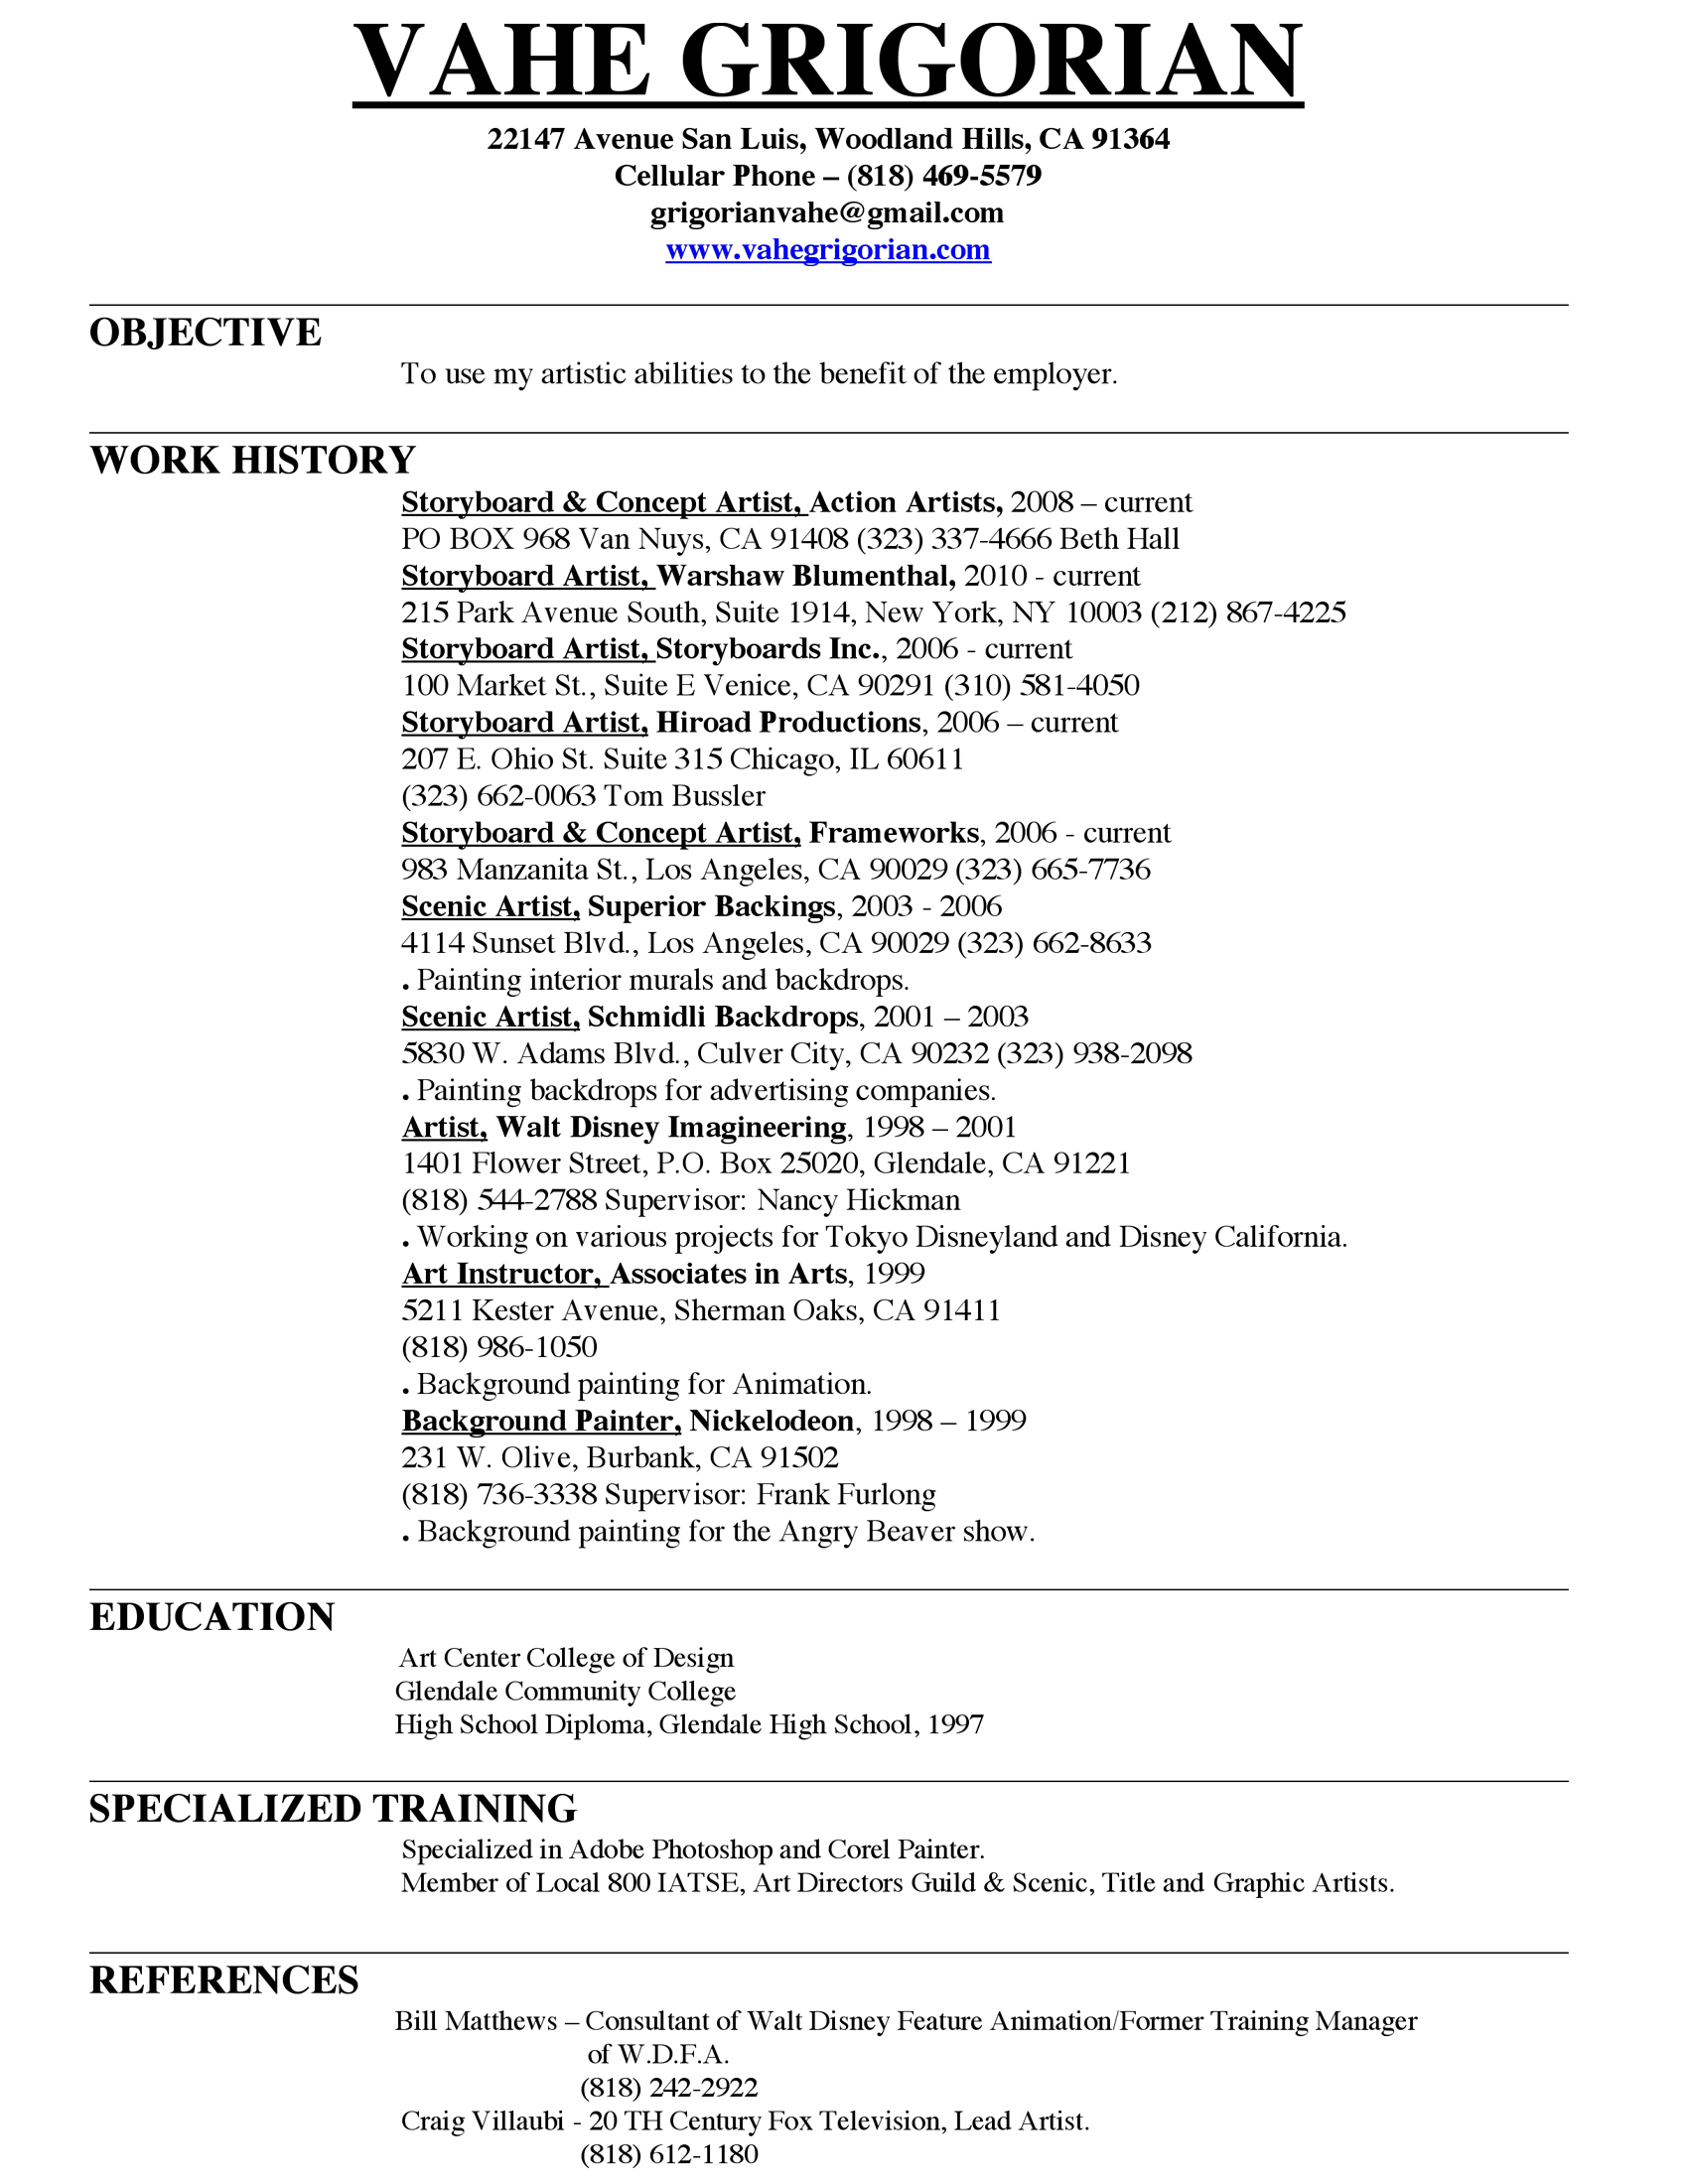 doc resumes for warehouse workers warehouse worker warehouse resume objective examples resumes for warehouse workers